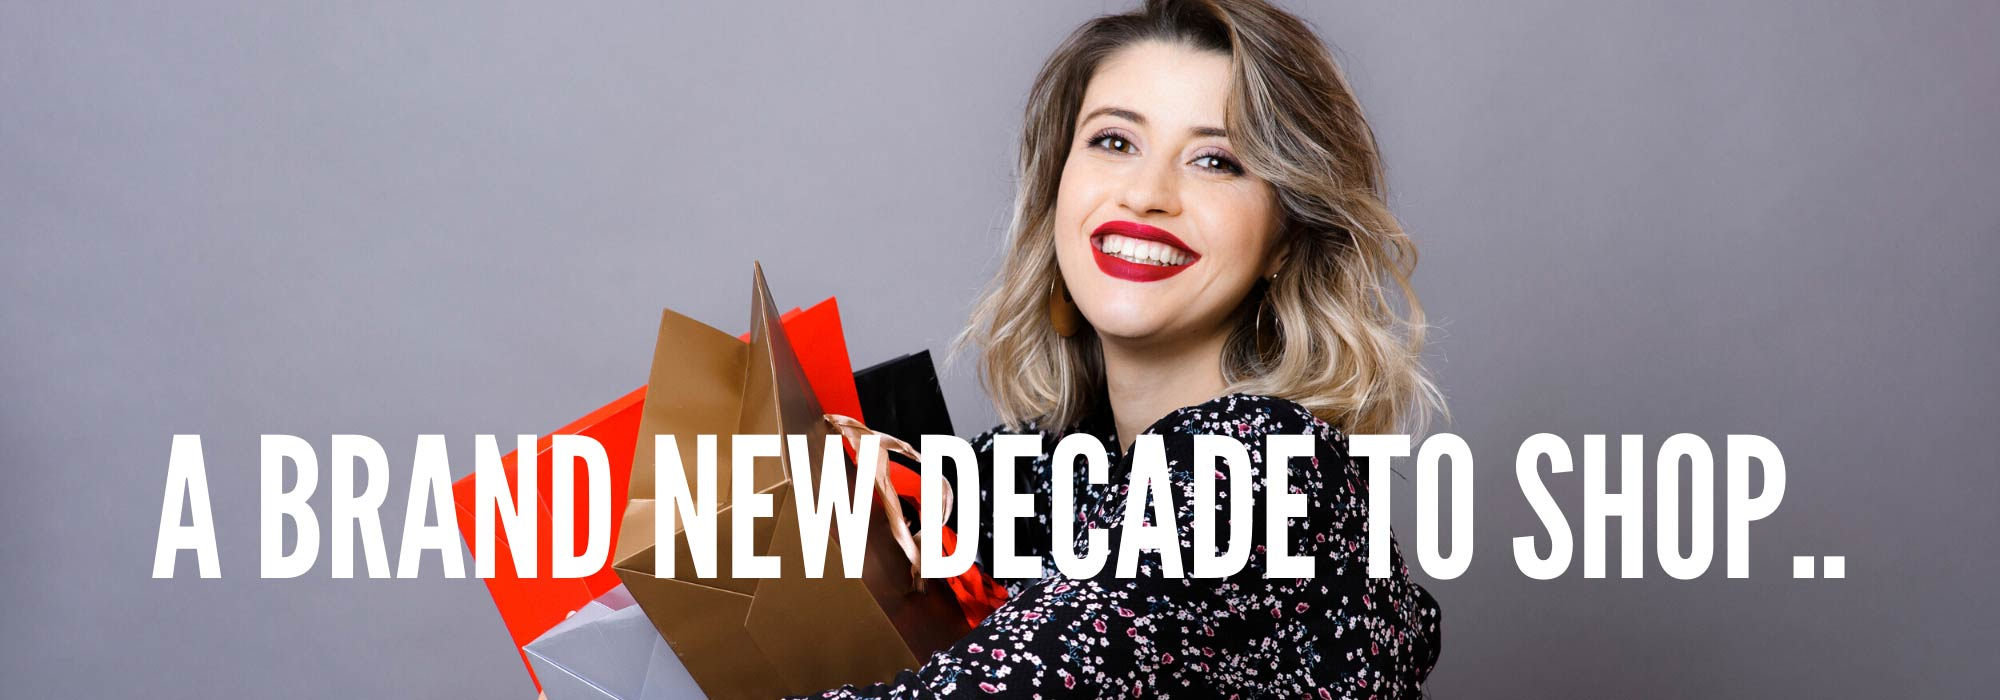 A brand new decade to shop.